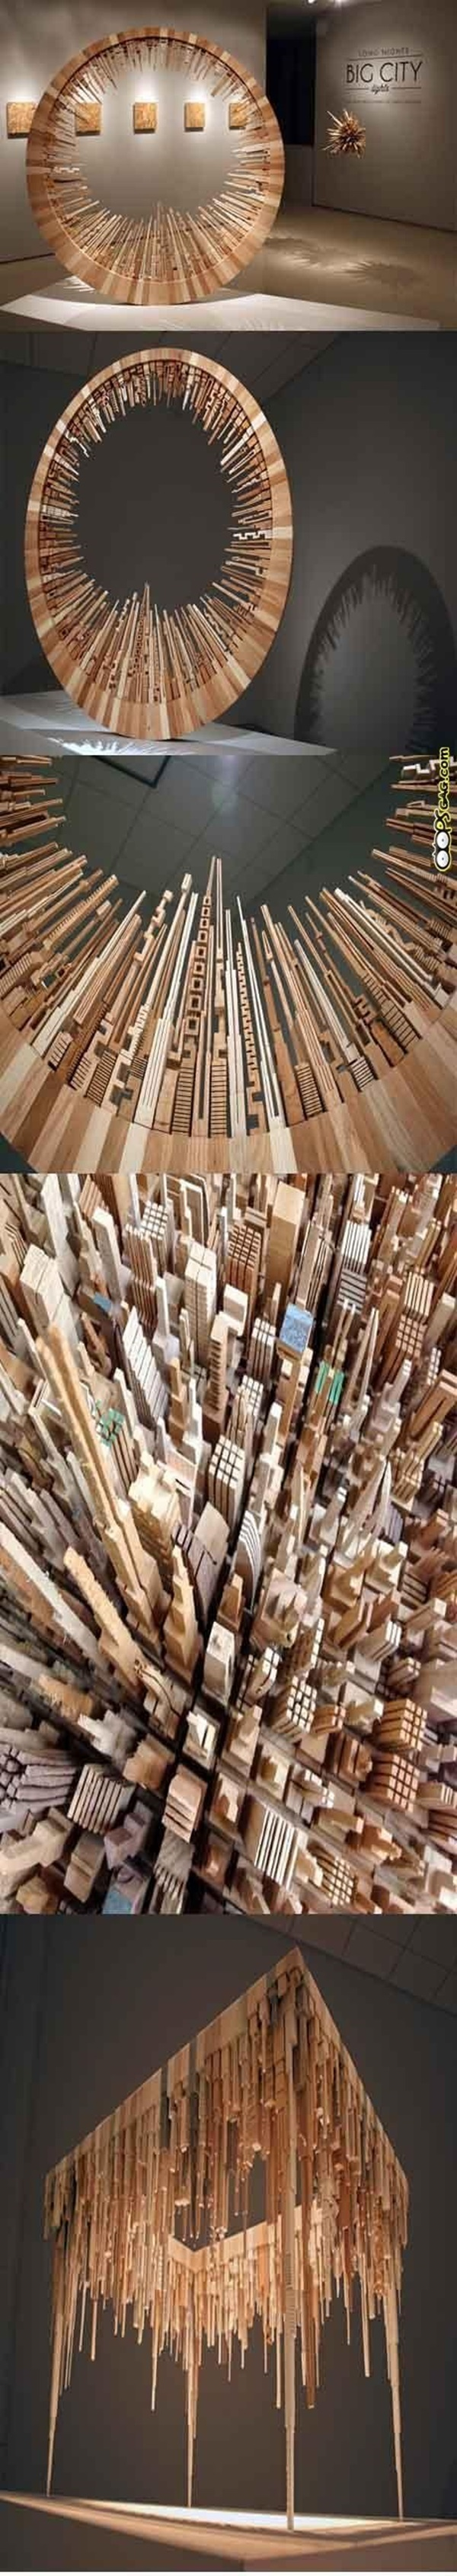 Wood Art Ideas (16)